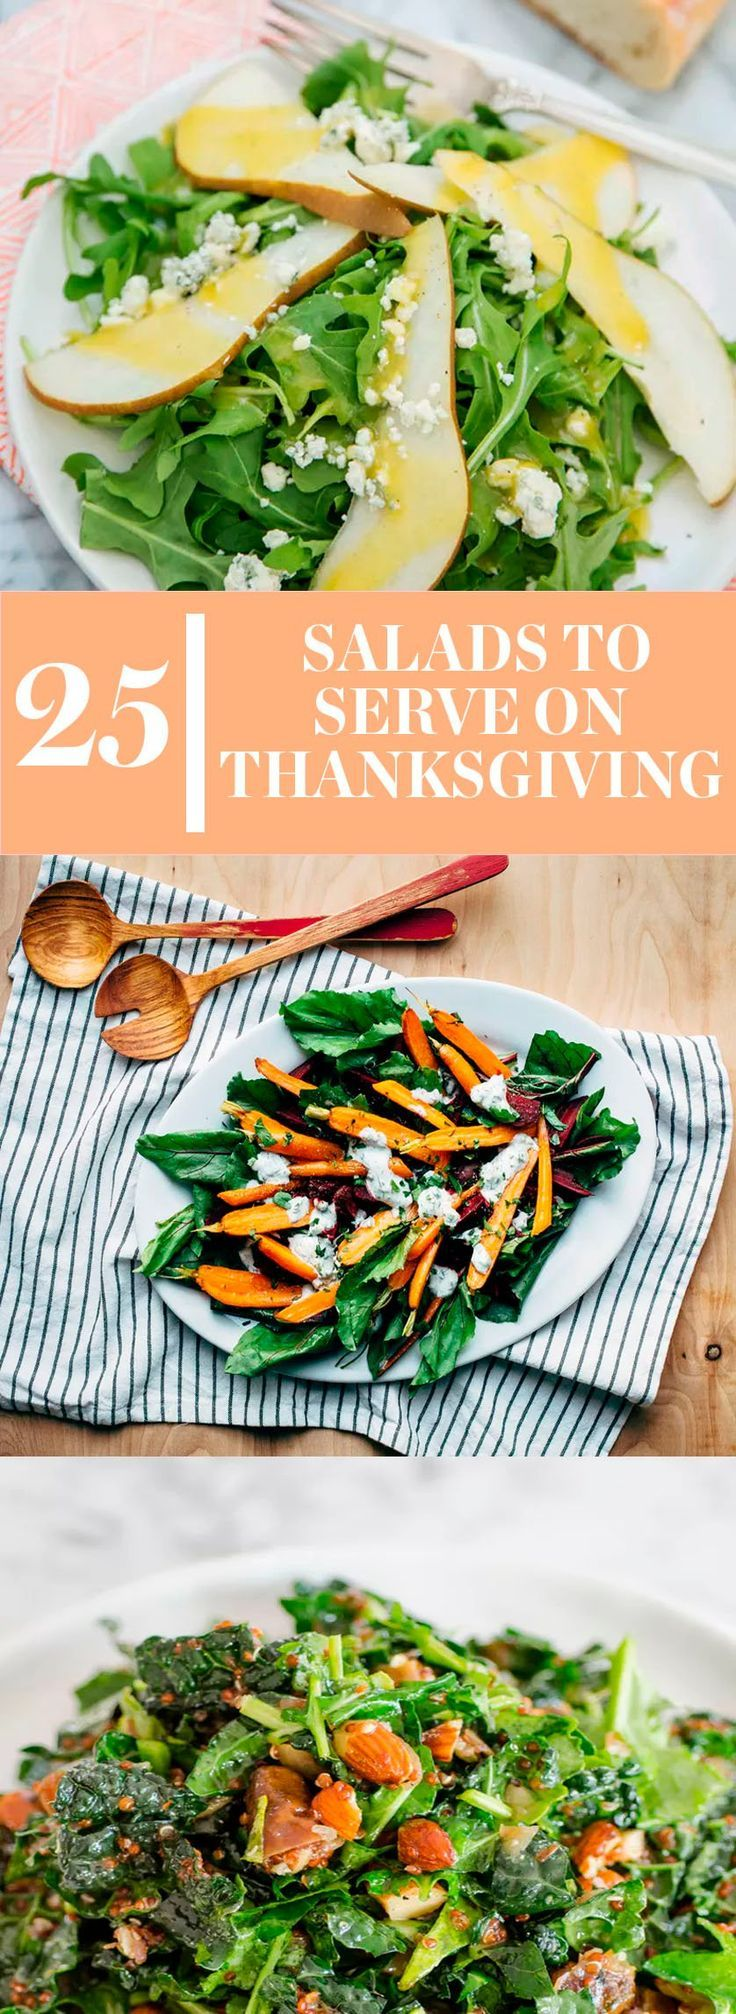 25 Fall Salad Recipes and Ideas for Thanksgiving or Other Holiday Parties. Add some healthy greens (or some indulgent ones) to your selection of Thanksgiving side dishes! These tasty salads will bring a smile to anyone's face as they load up their plates with sides.